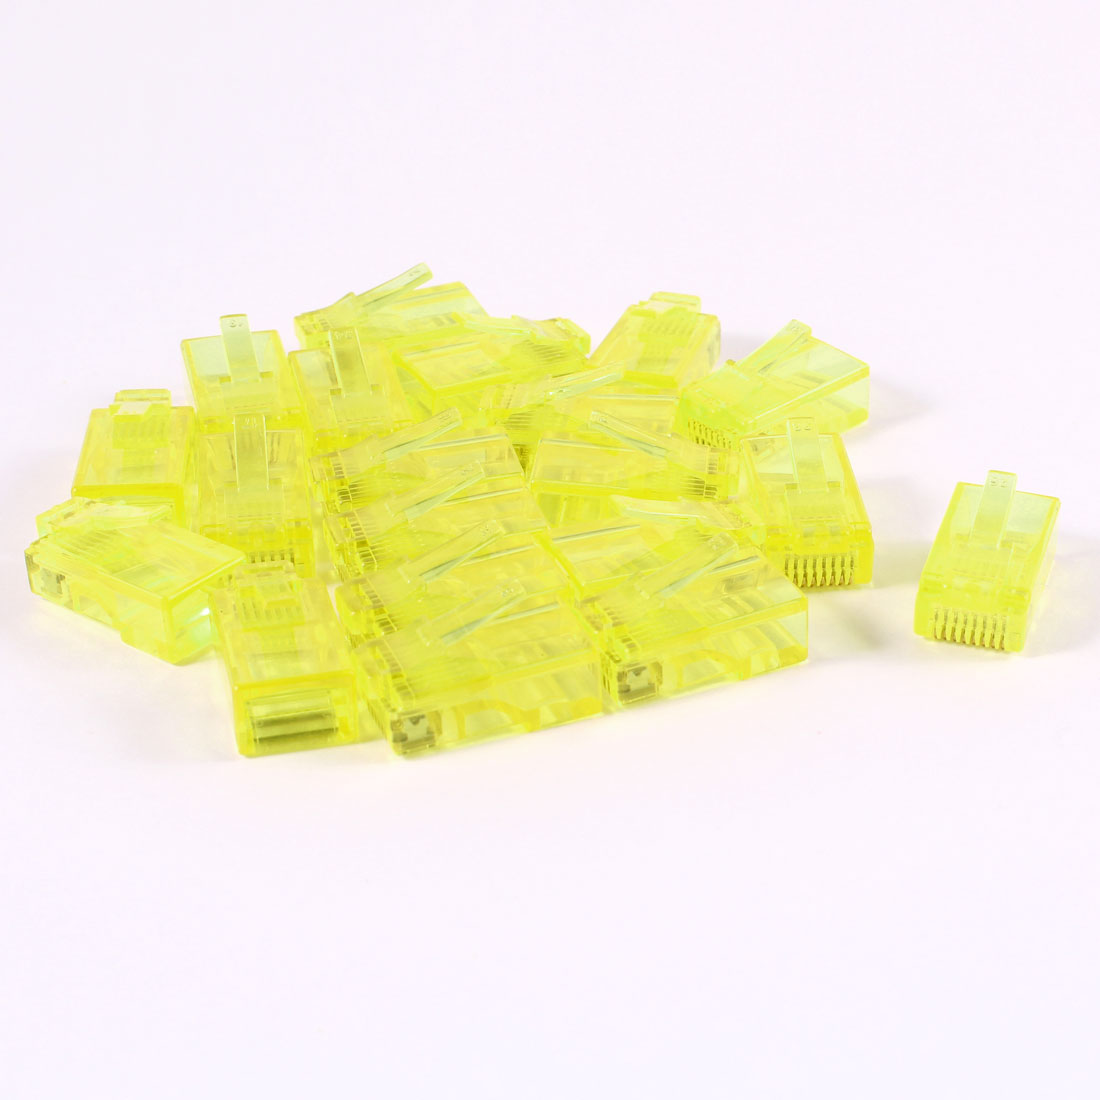 20 Pcs Yellow Plastic Shell RJ45 8P8C Modular Jack End Network Connector